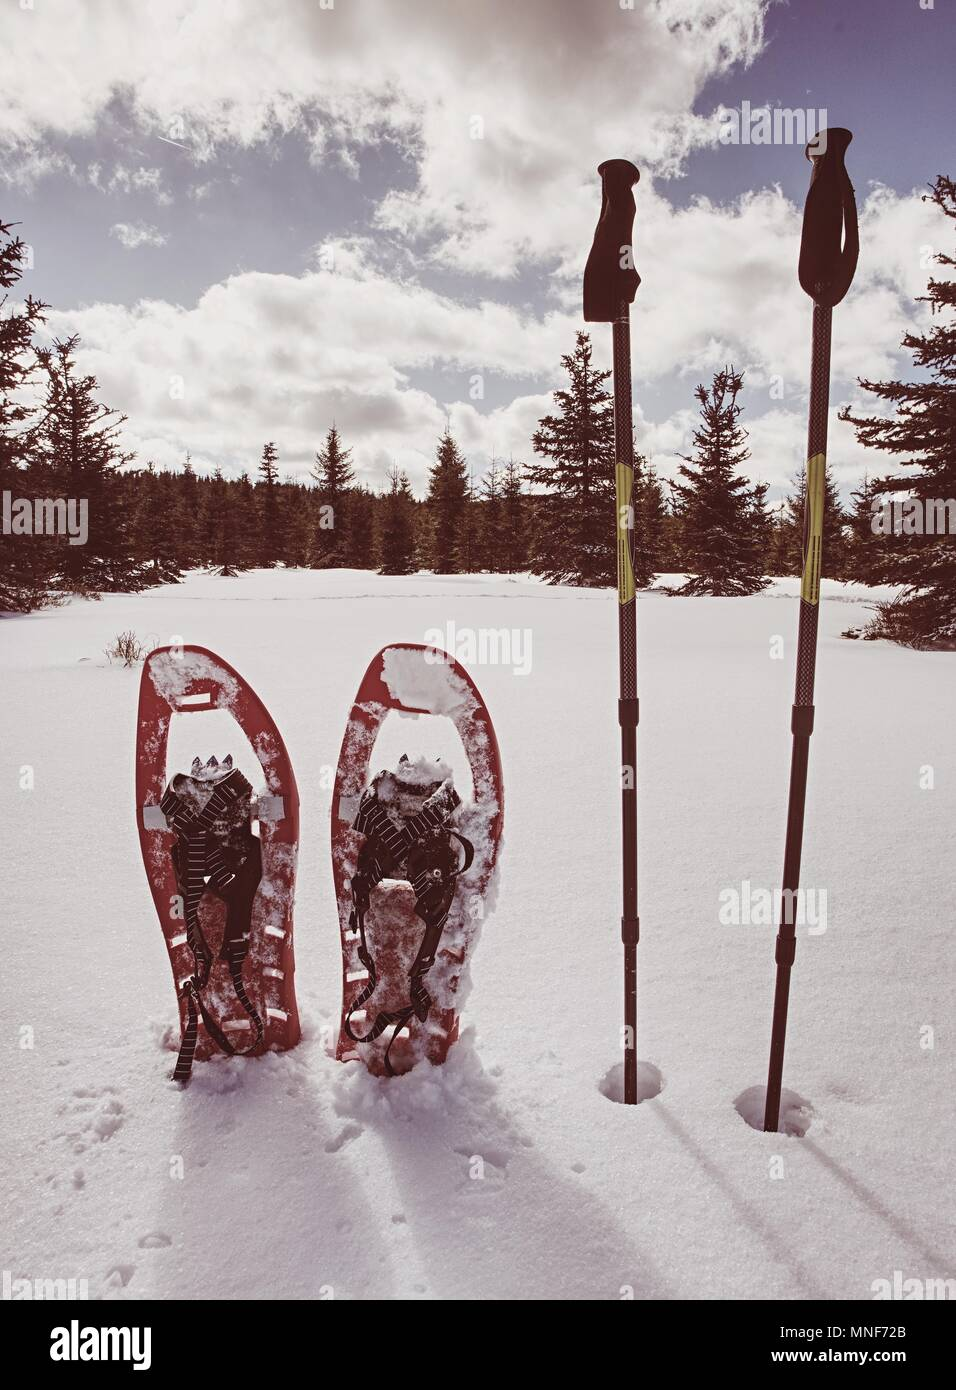 Snowshoes in snow. Winter trail over snowy hills and mountains. Winter walks with forests and mountains.  Outdoor winter activity and healthy lifestyl Stock Photo